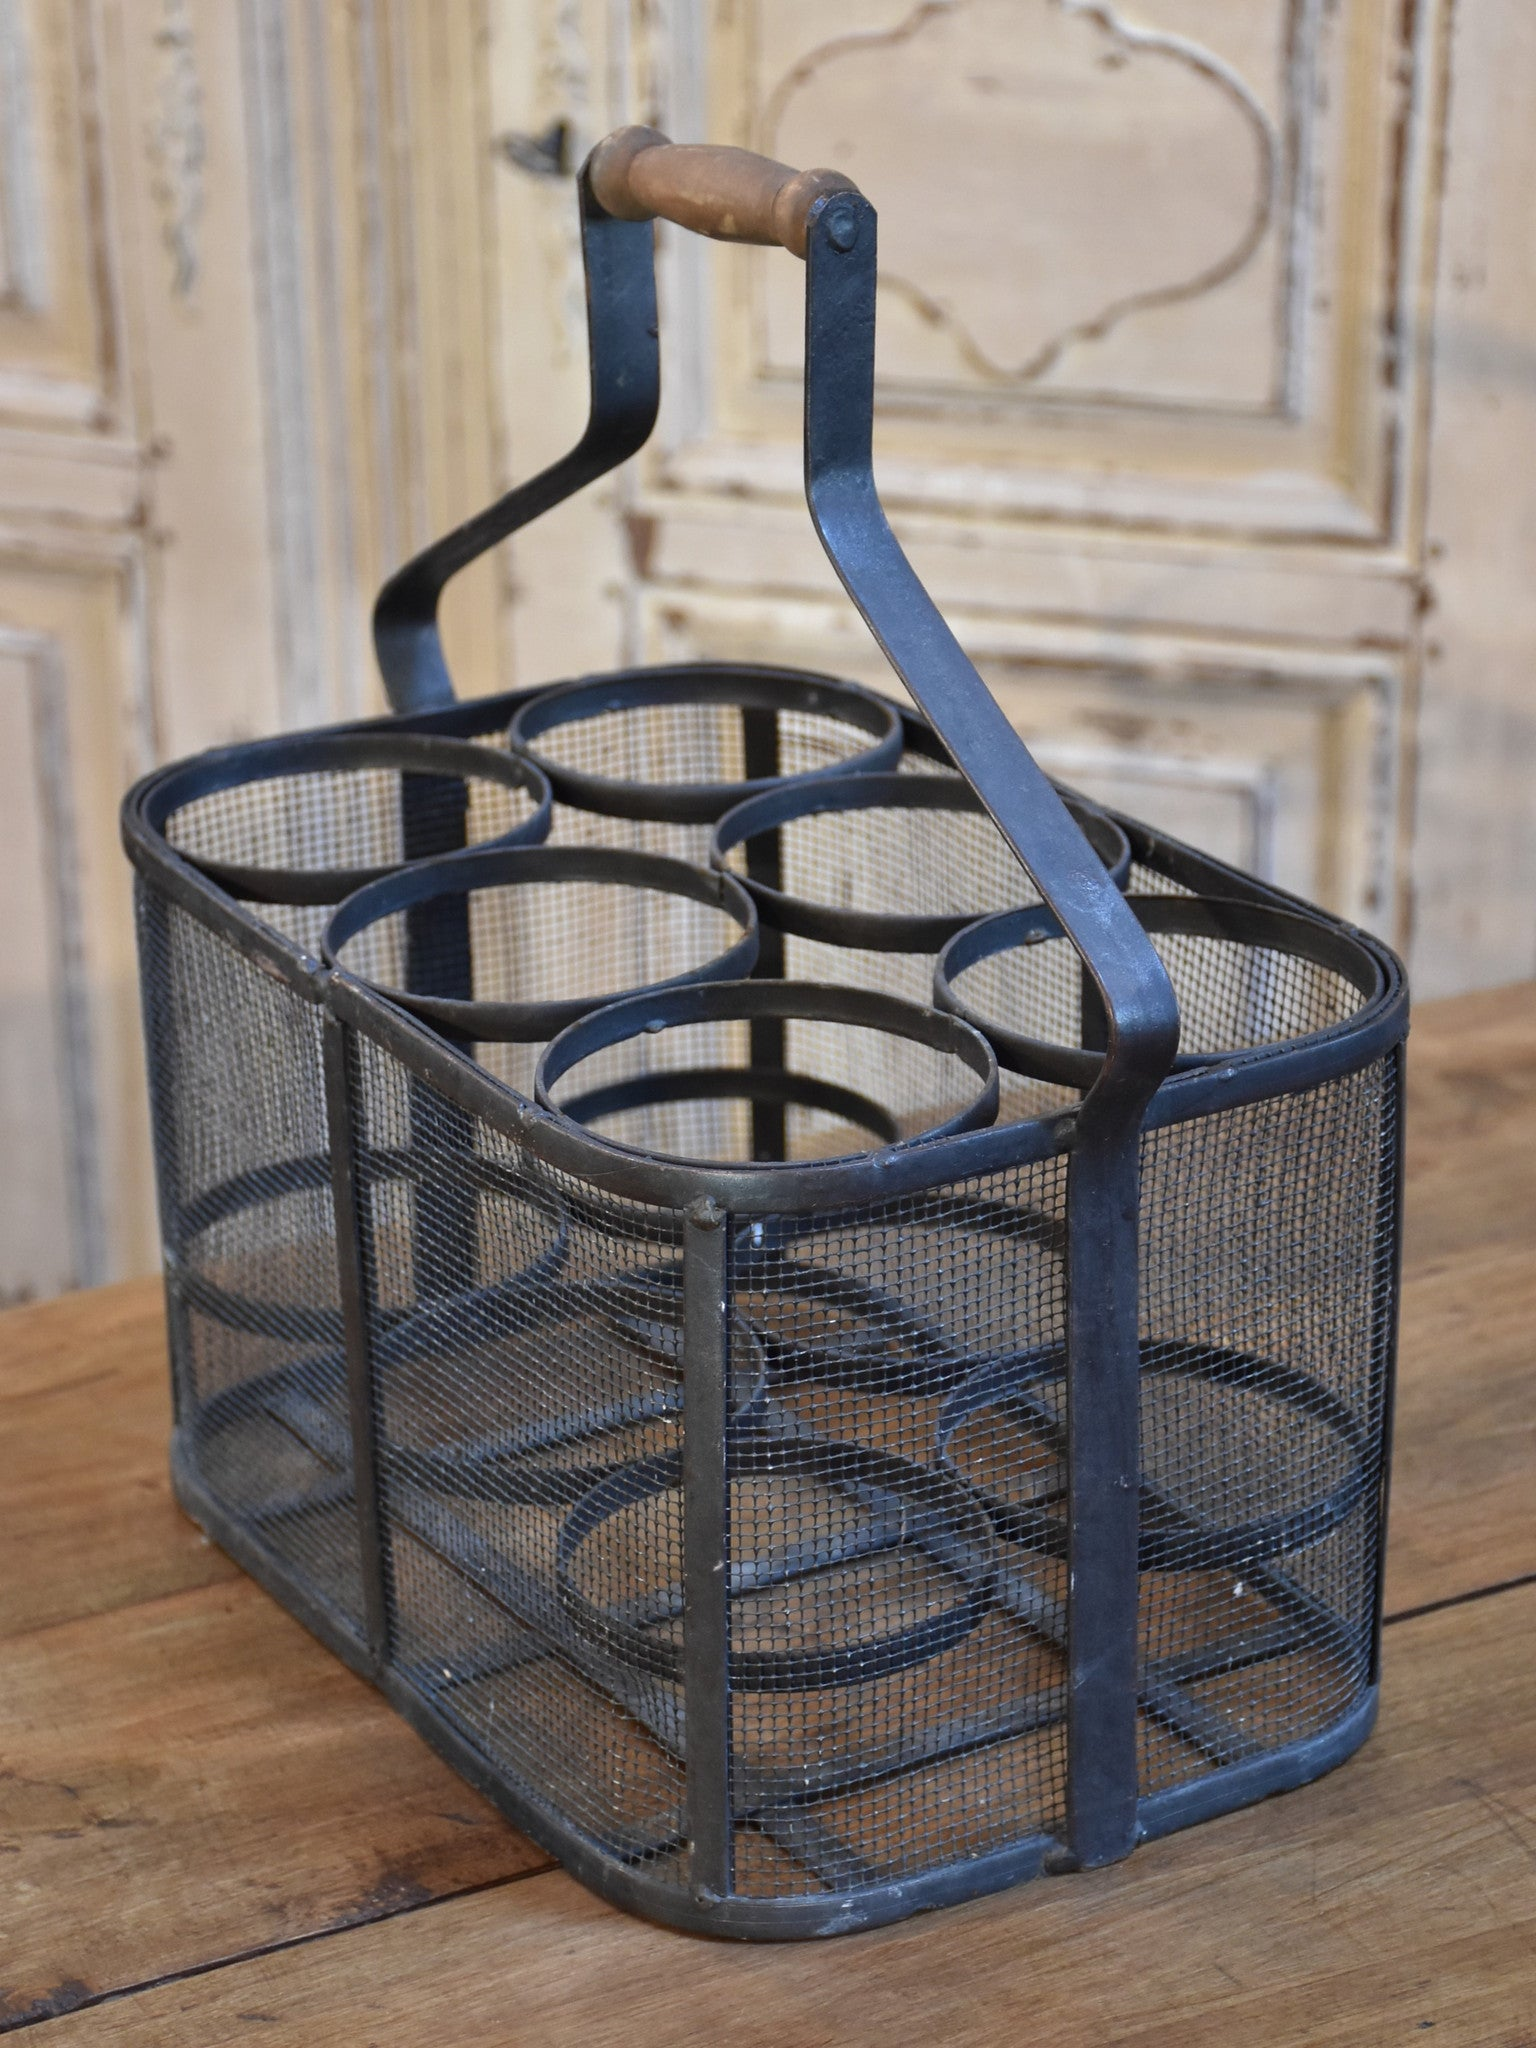 Porte-bouteille 6 bottle carrier